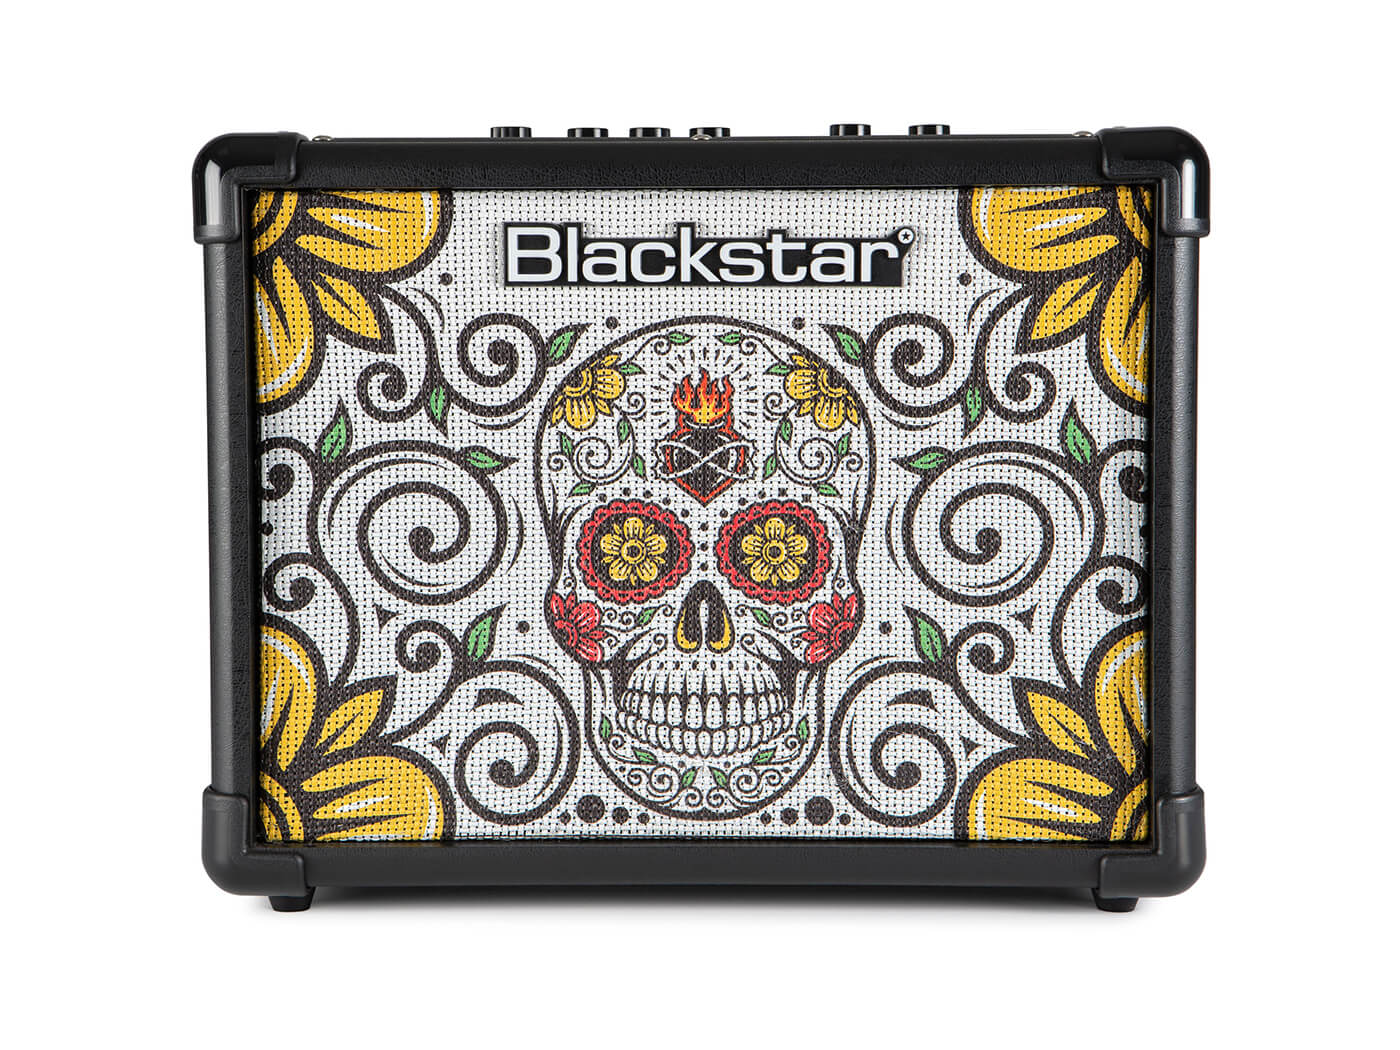 The Blackstar ID:CORE 10 V2 Sugar Skull with a Day of the dead-inspired motif